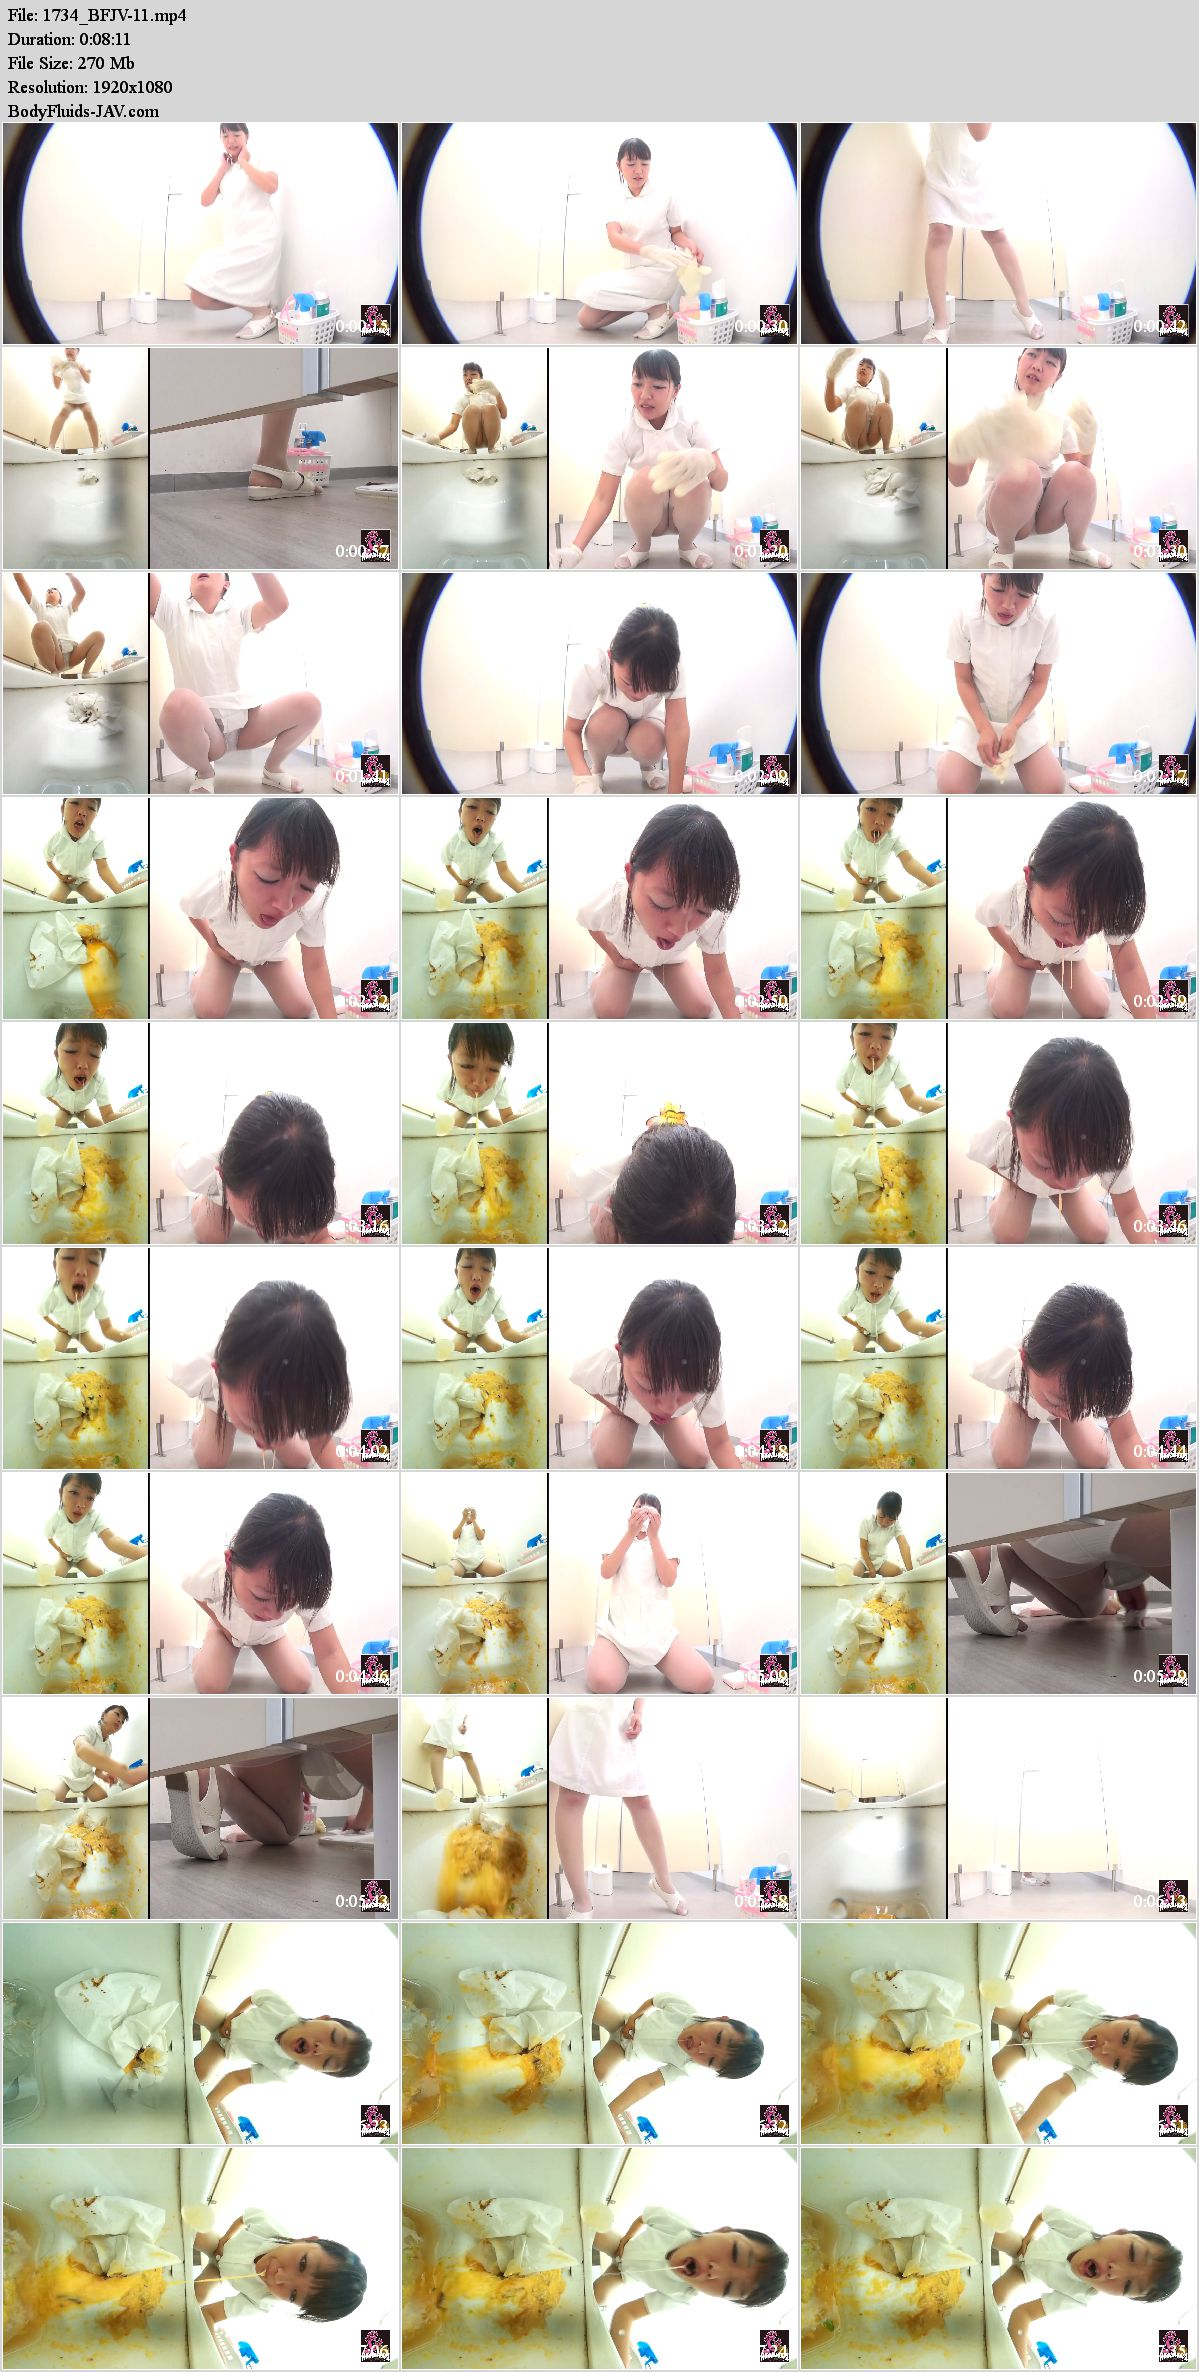 BFJV-11 Girl puke in toilet after food poisoning. (HD 1080p)